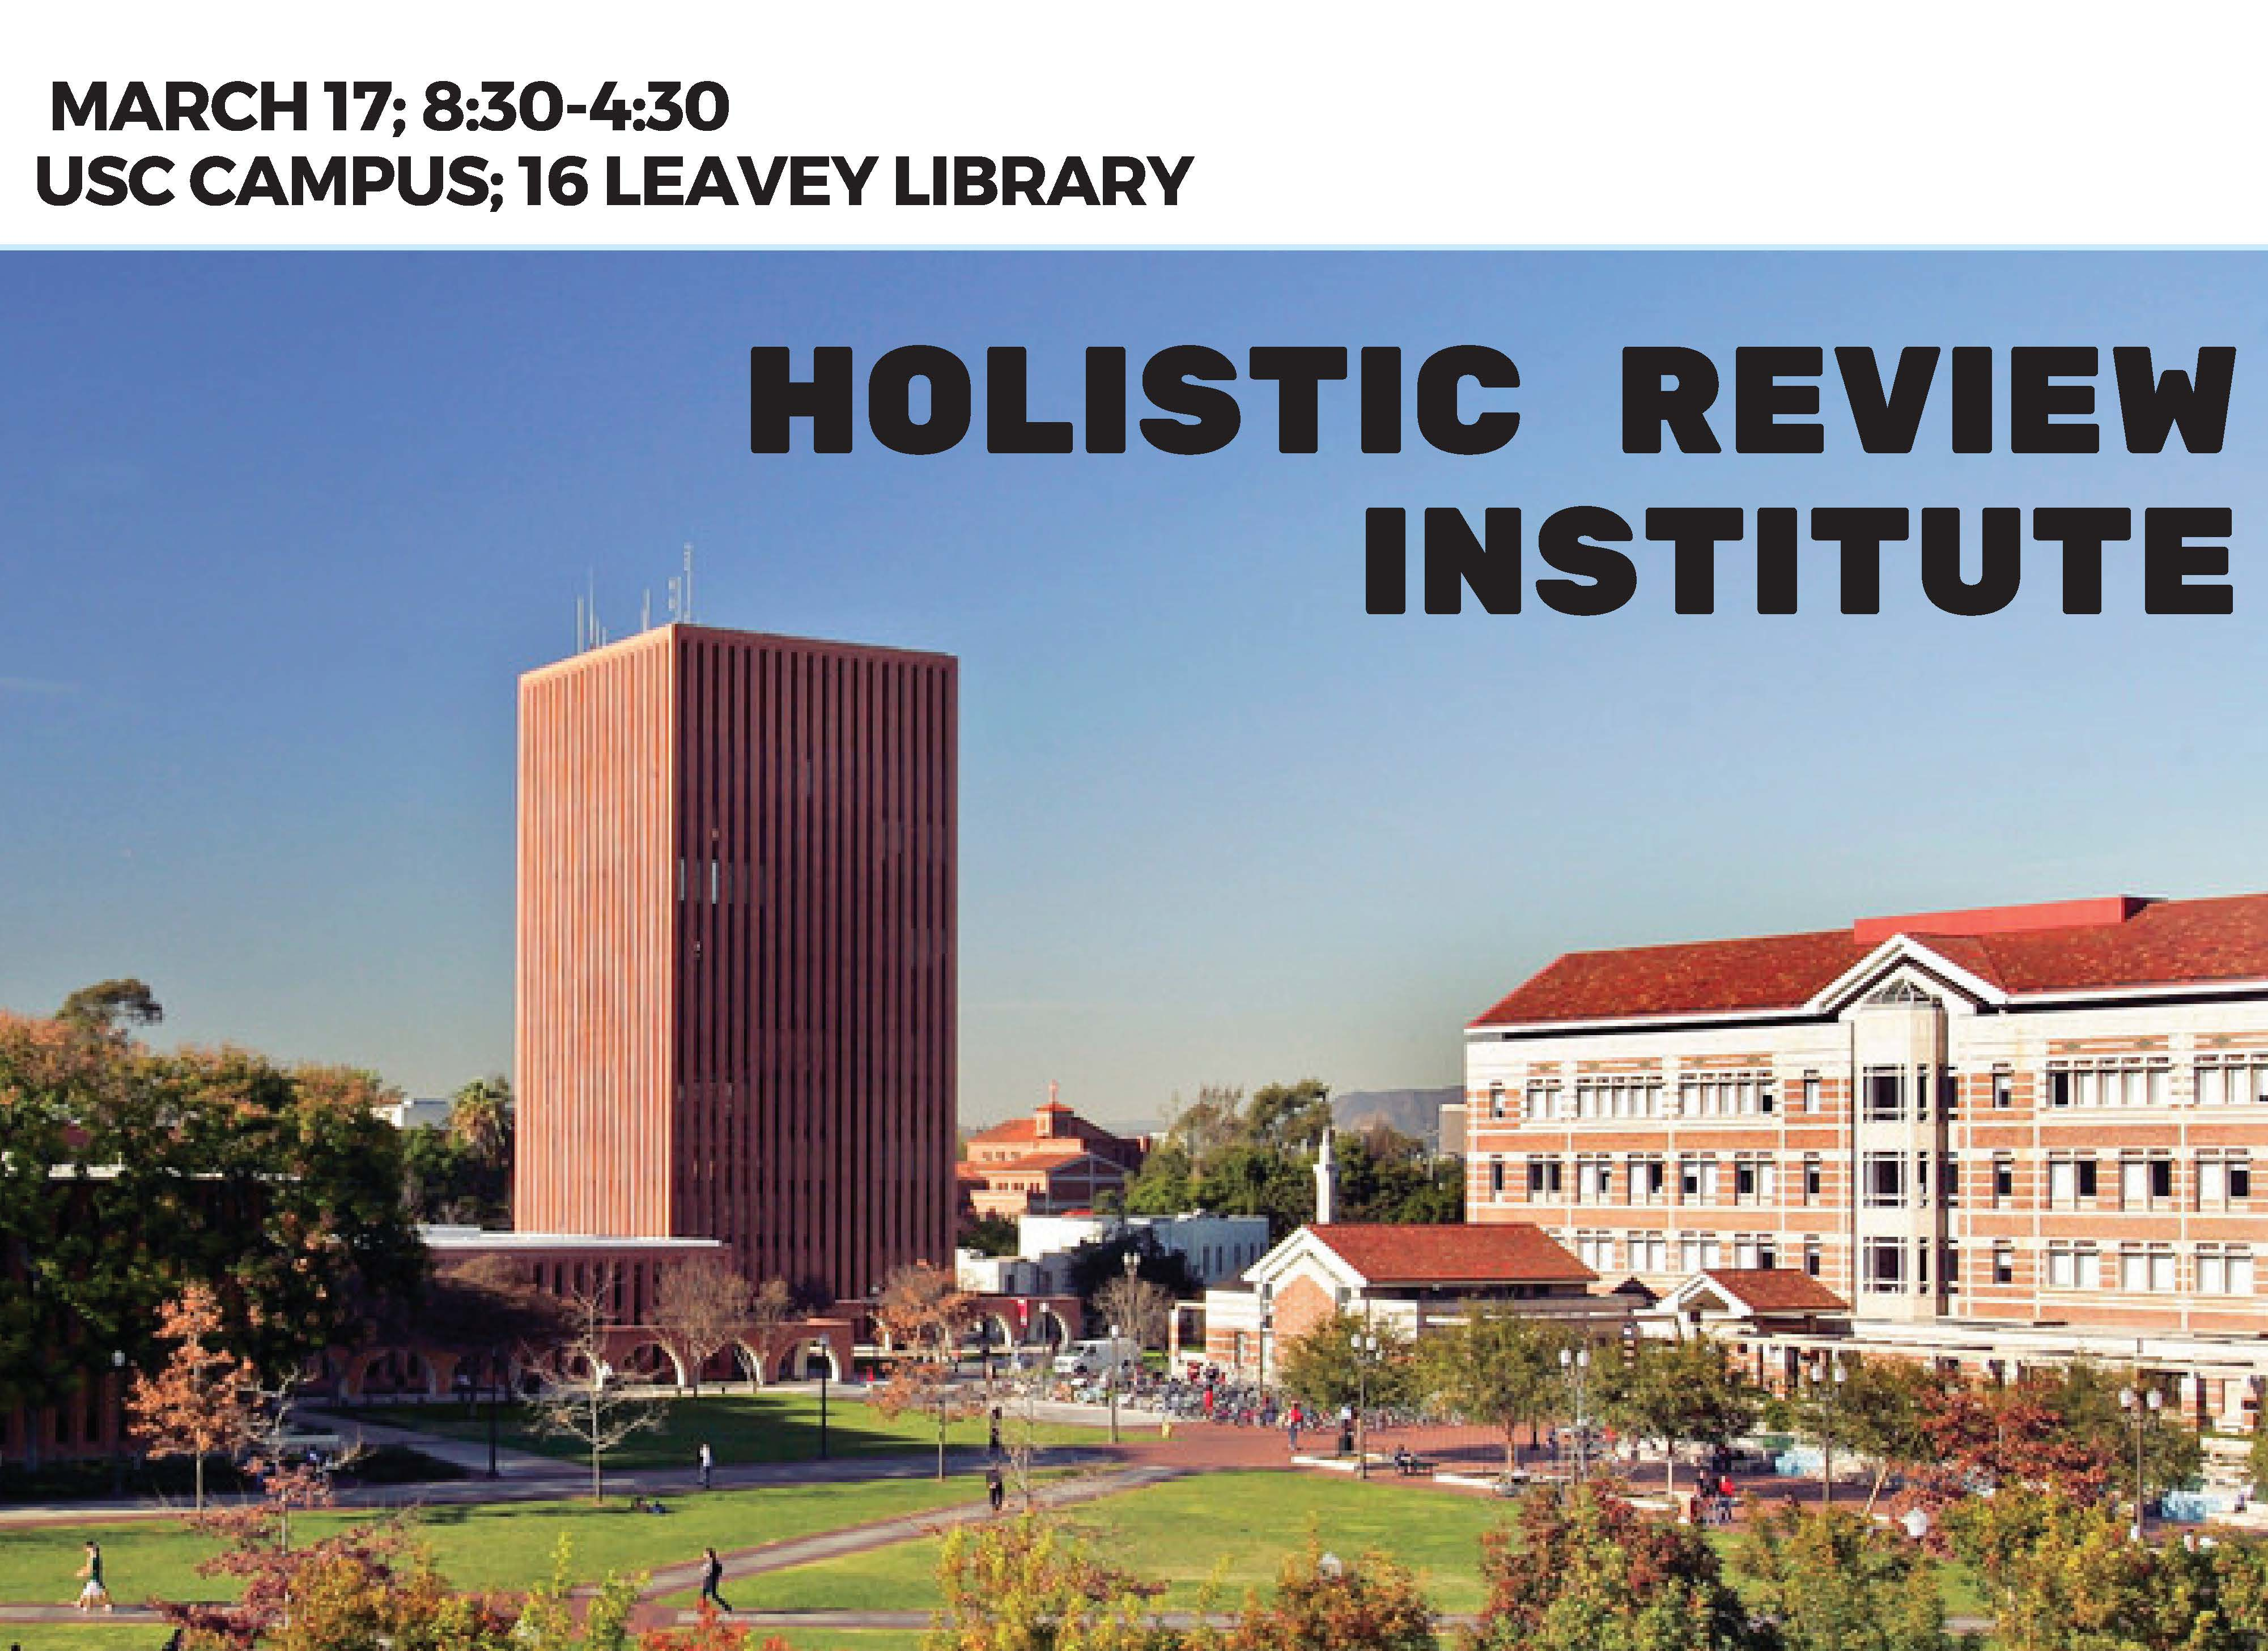 Holistic Review: A One-Day Institute  — March 17, 2018